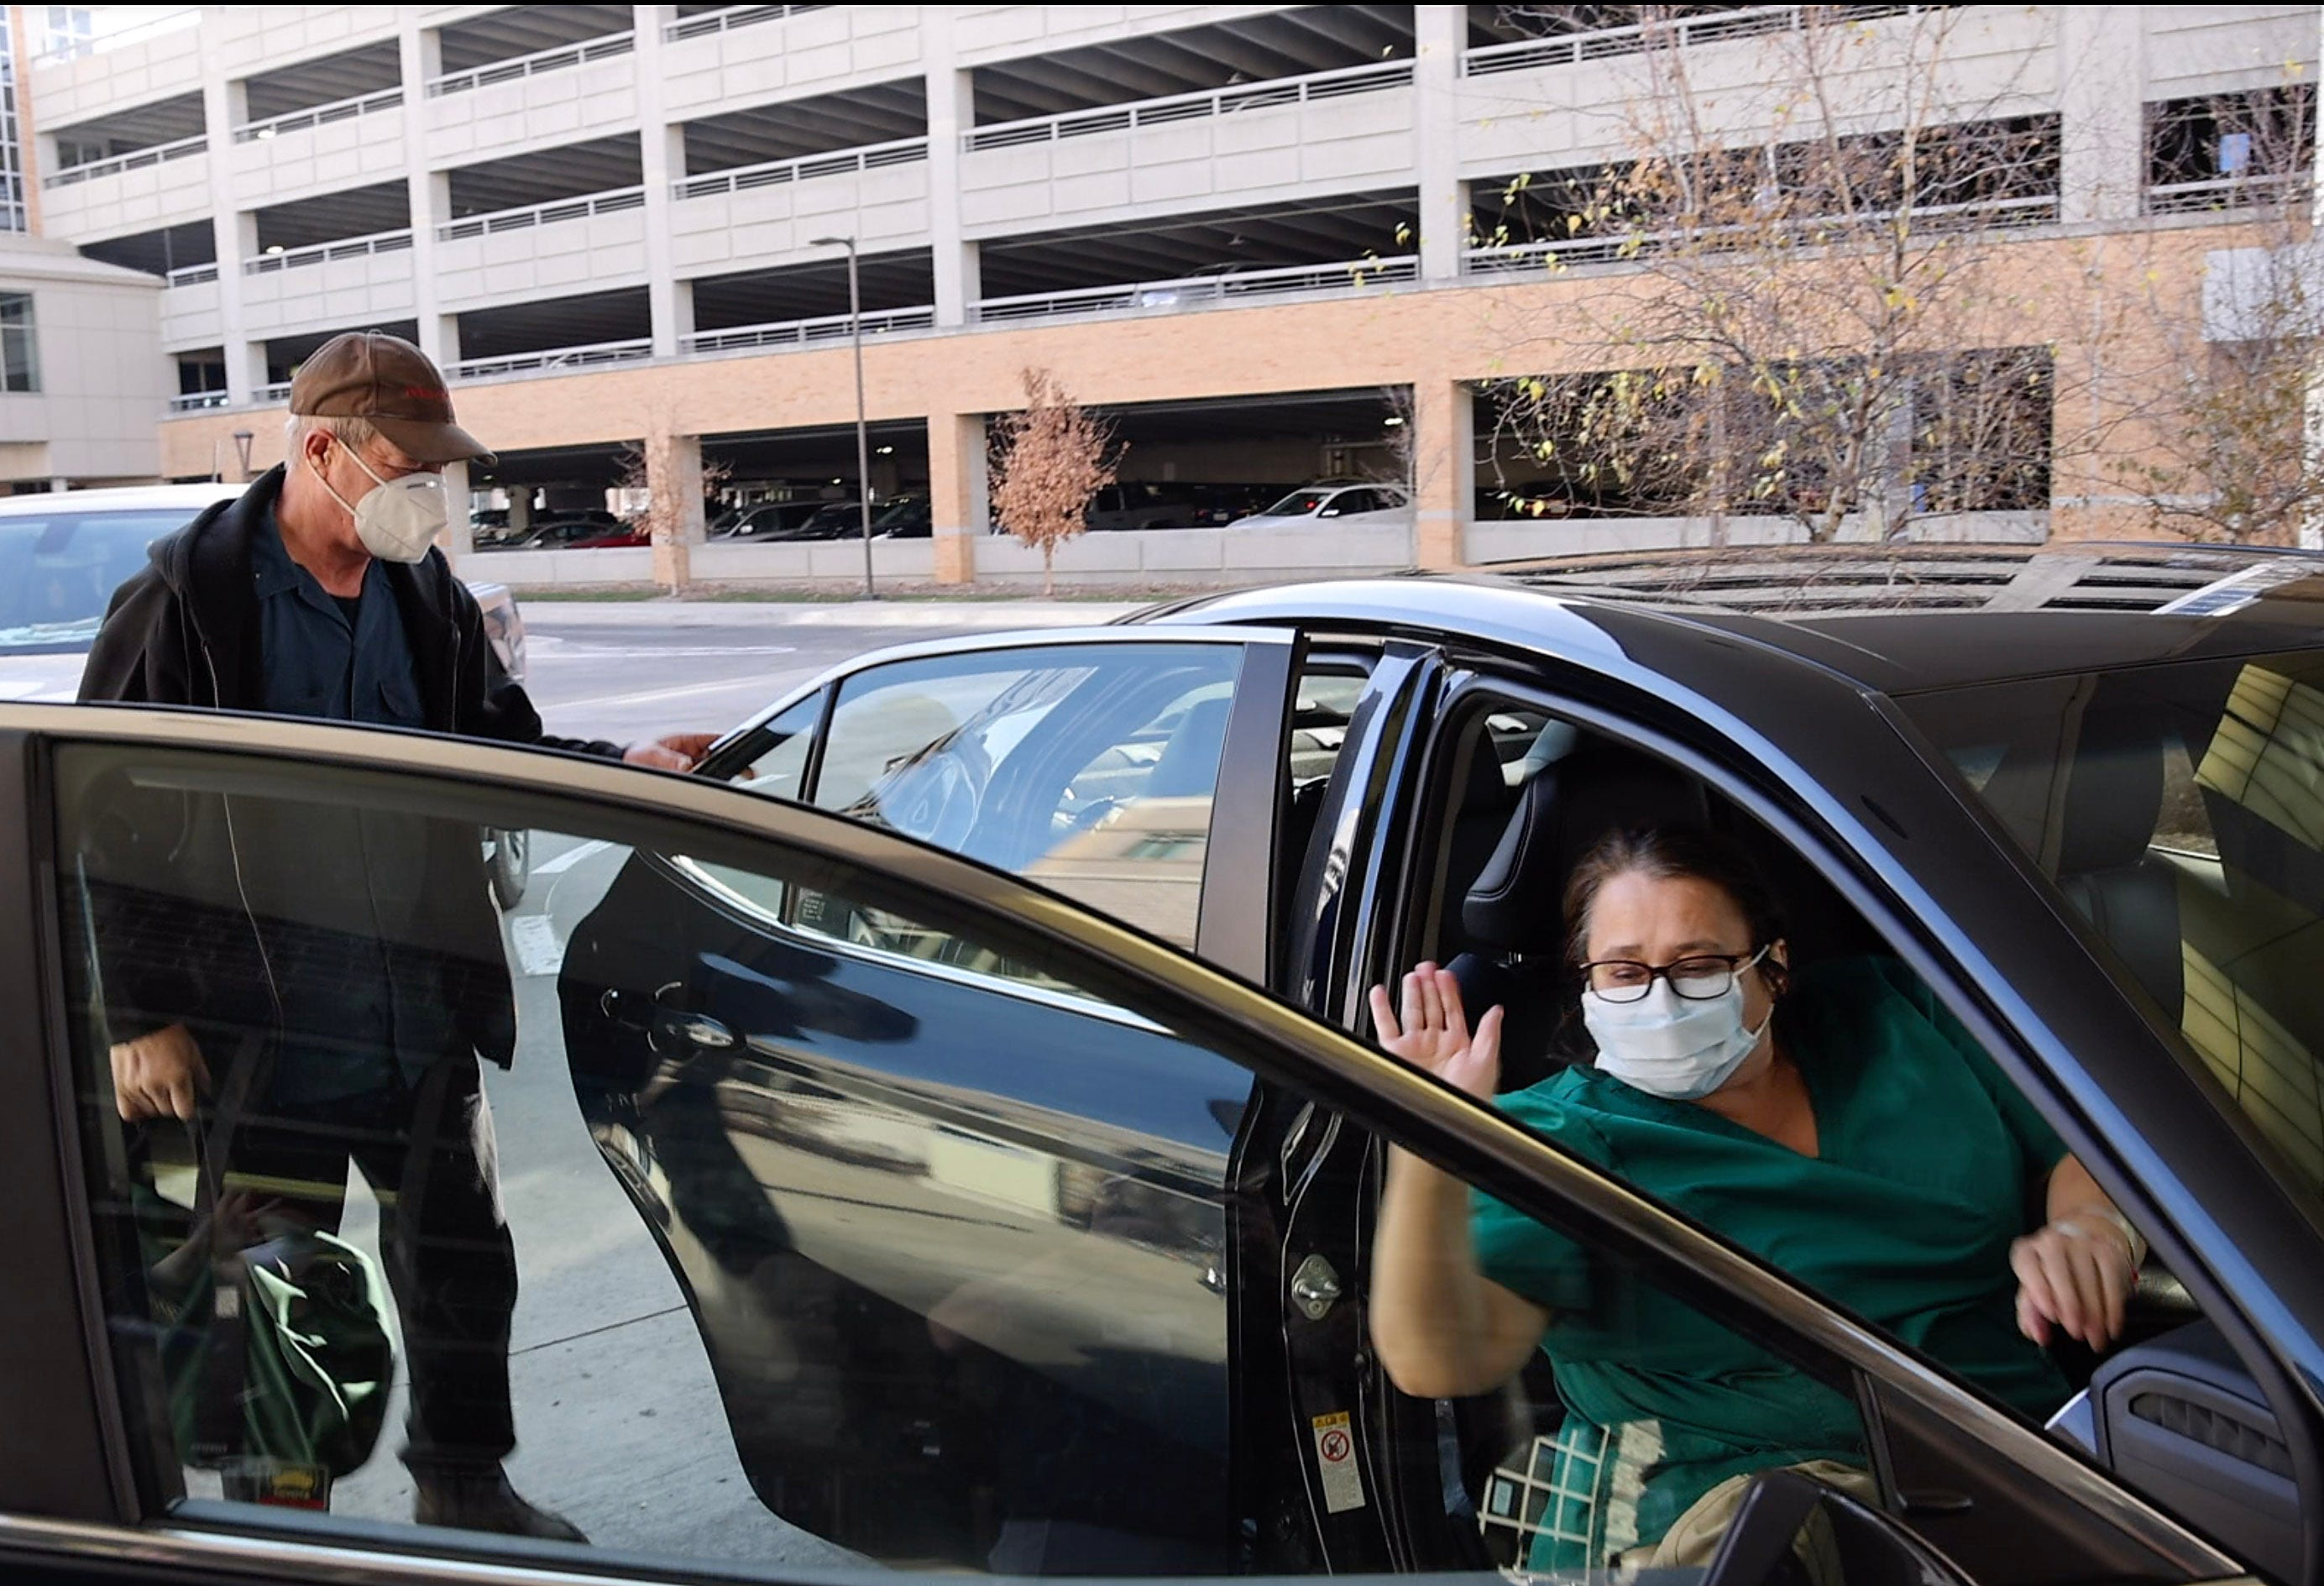 Mary Embrey waves goodbye as her husband, Ricky, picks her up from Mary Greeley Medical Center on Dec. 10 after treatment for COVID-19.